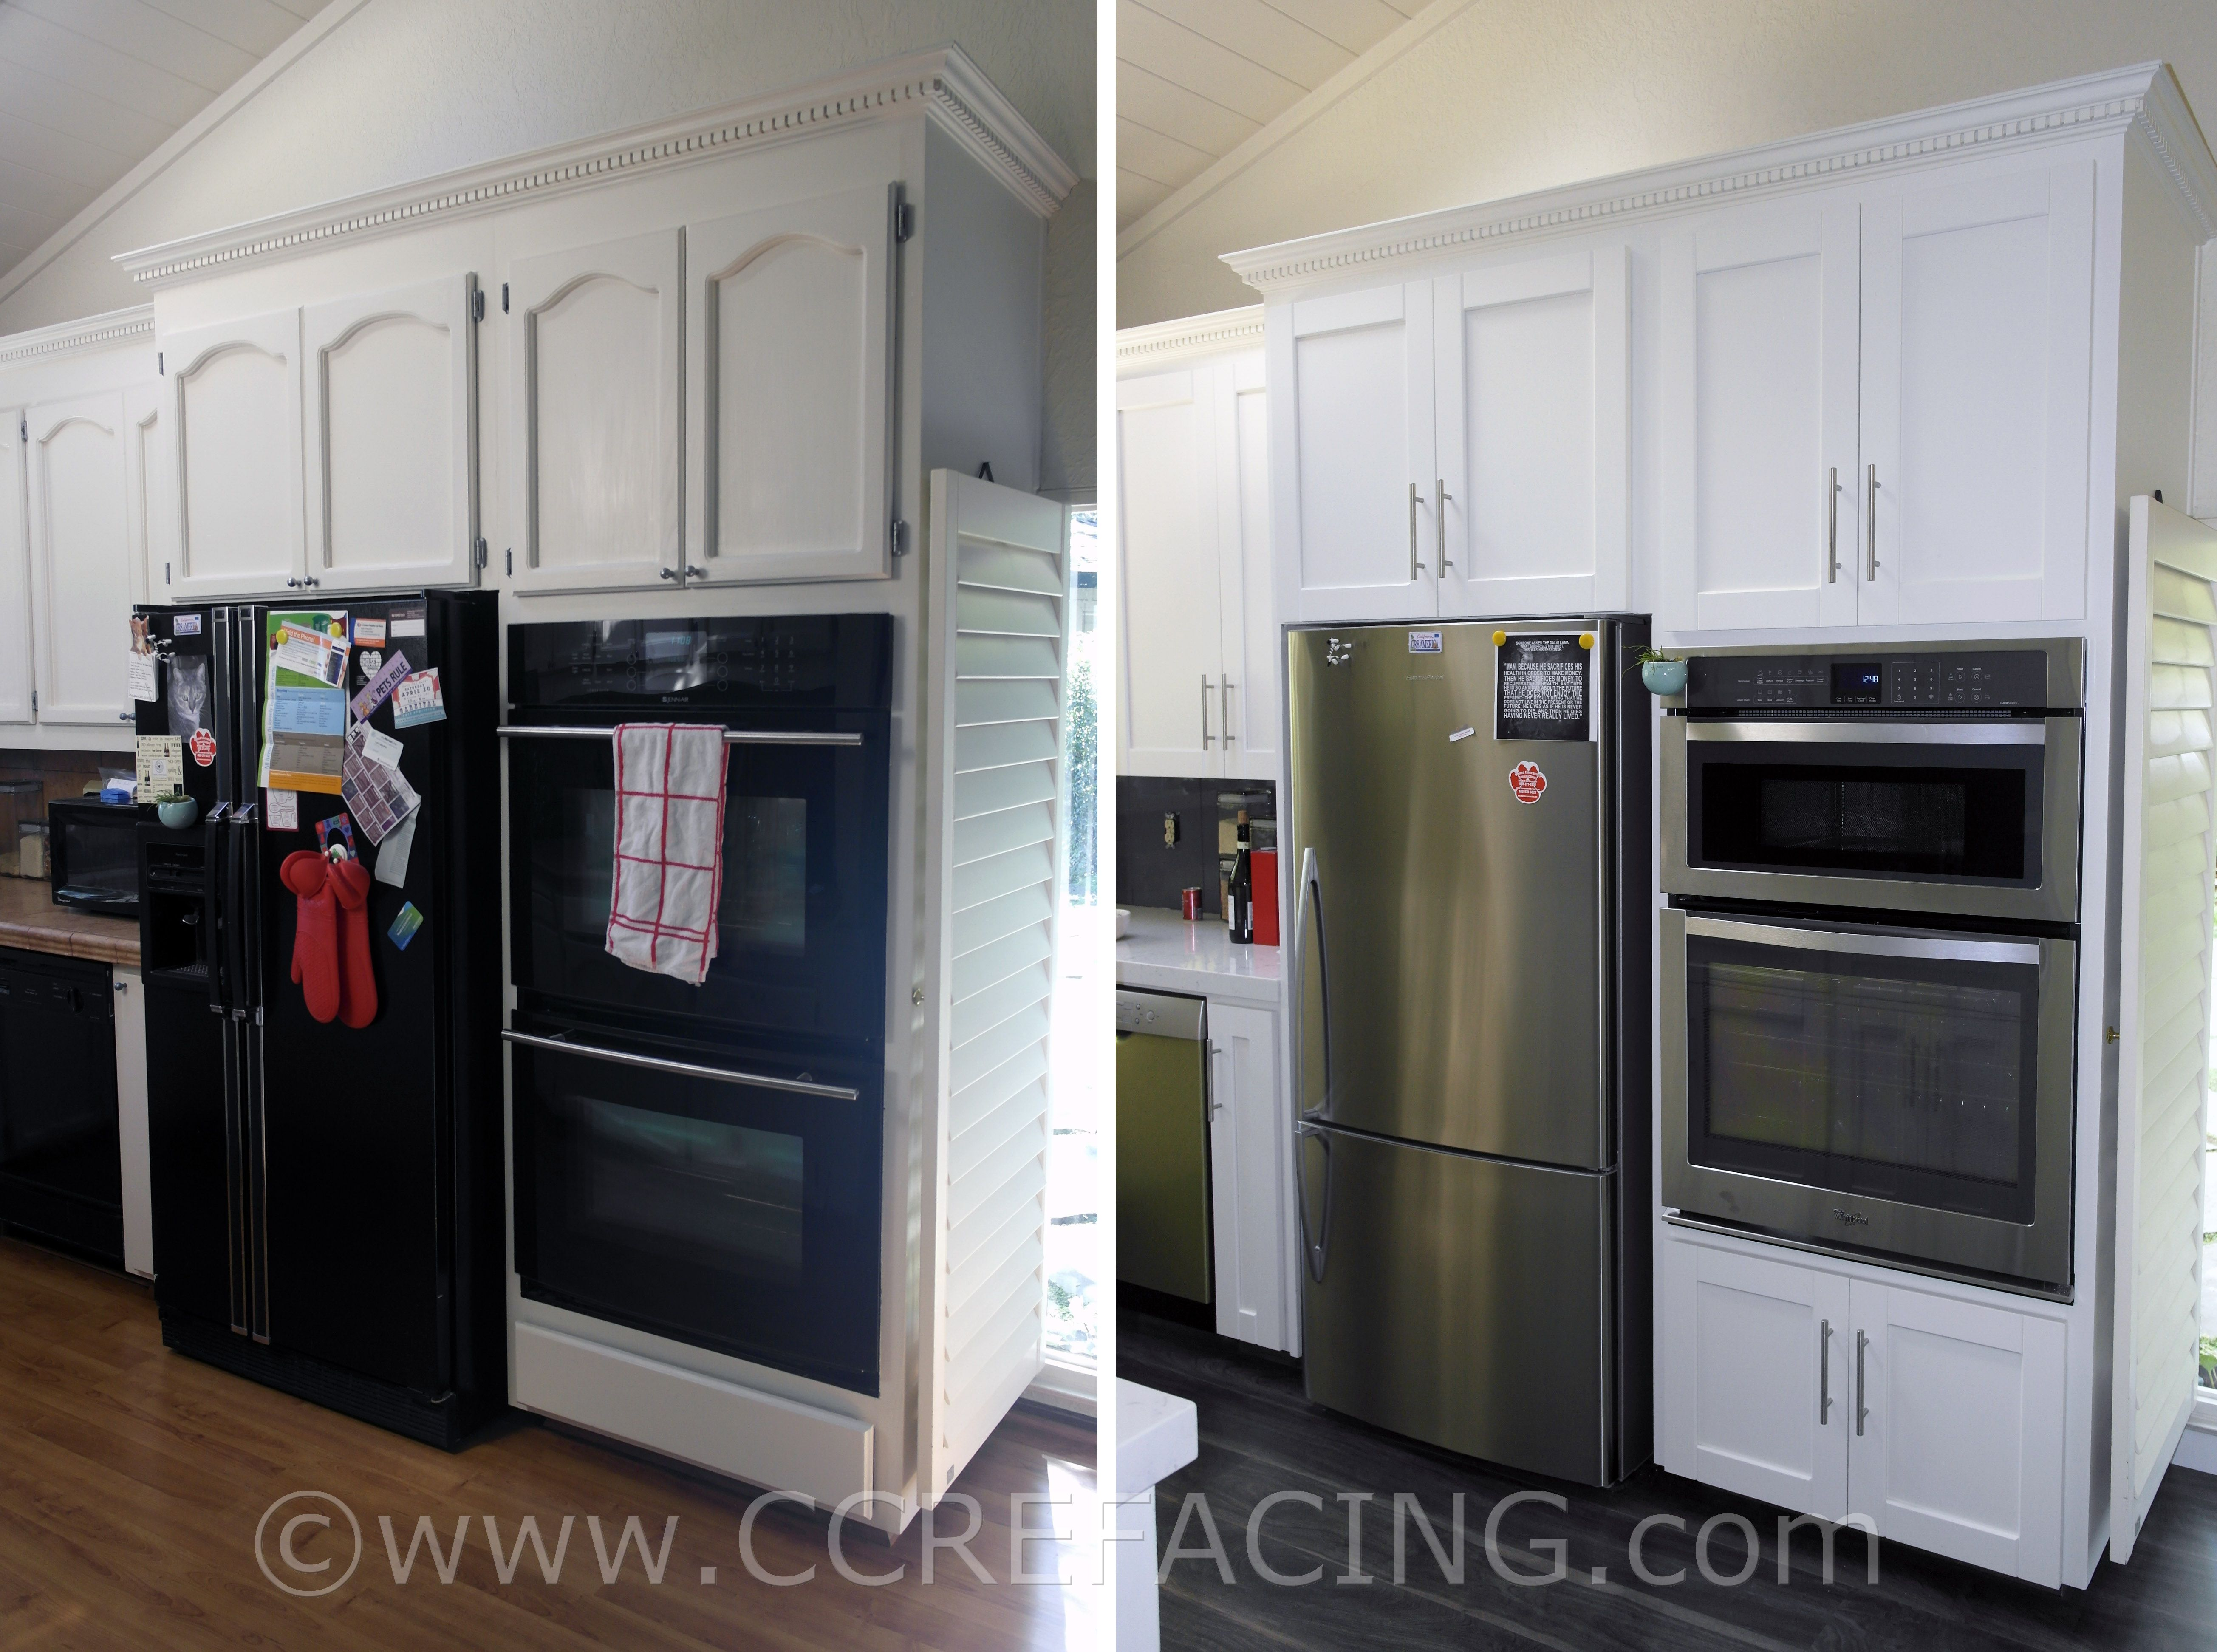 San Leandro Reface Refacing With White Shaker Cabinet Doors White Shaker Cabinets Cabinet Cabinet Refacing